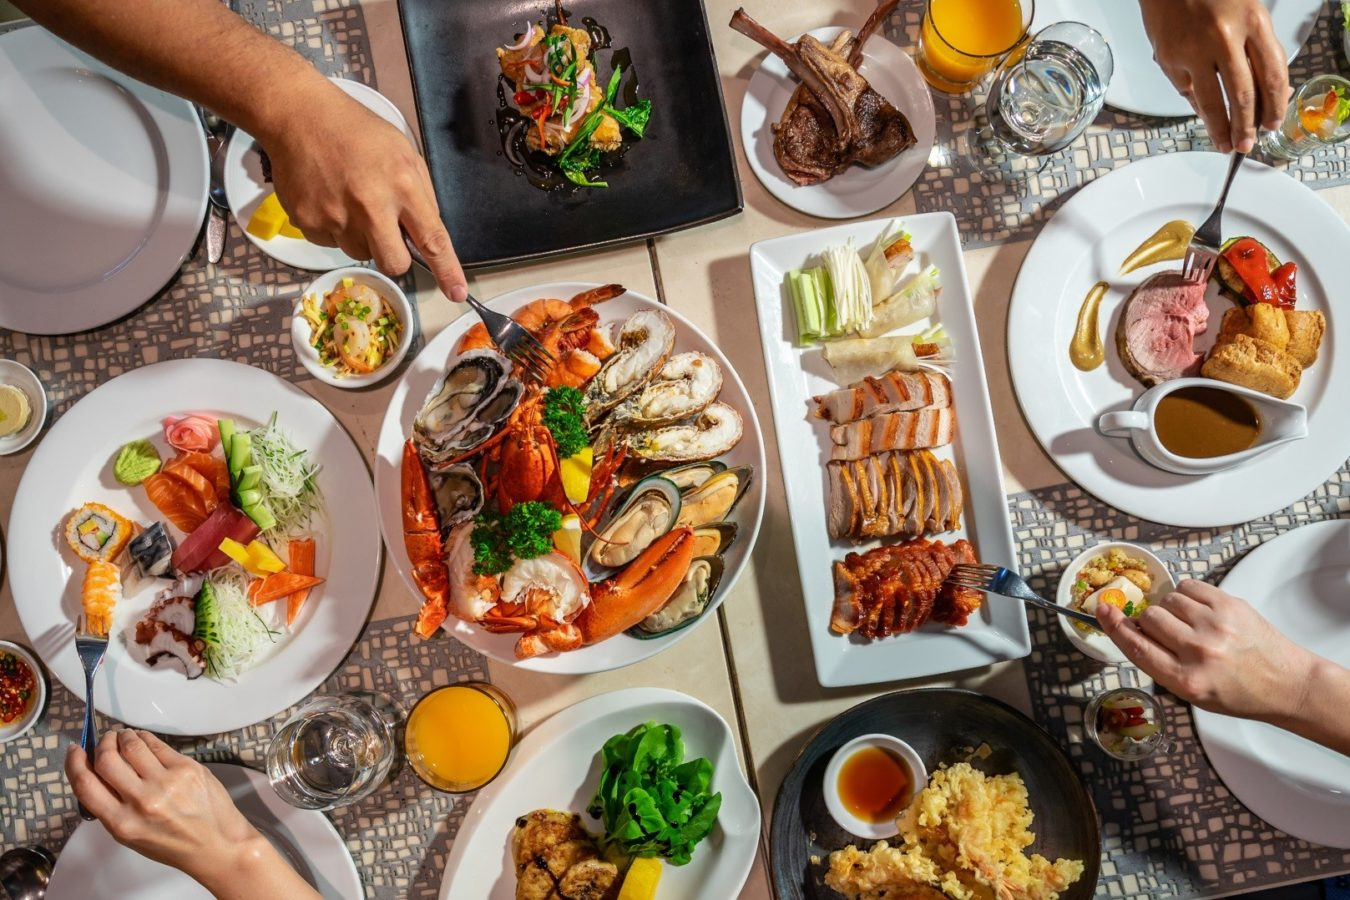 Your guide to 6 post-lockdown hotel restaurant buffets in Bangkok